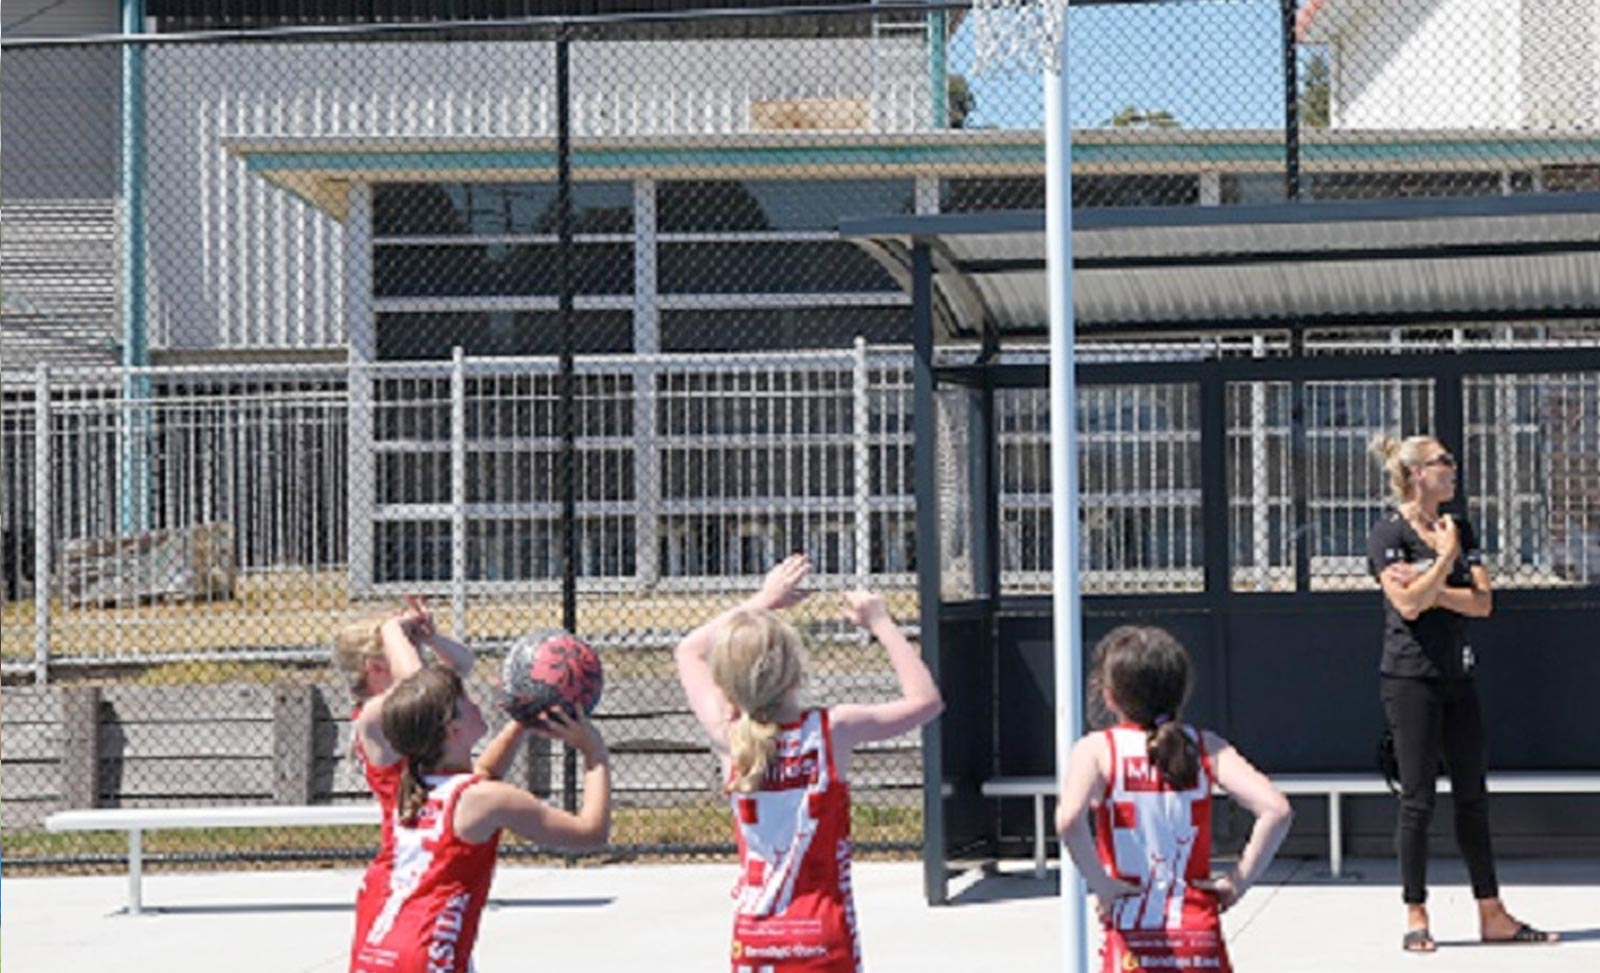 Darebin netball players